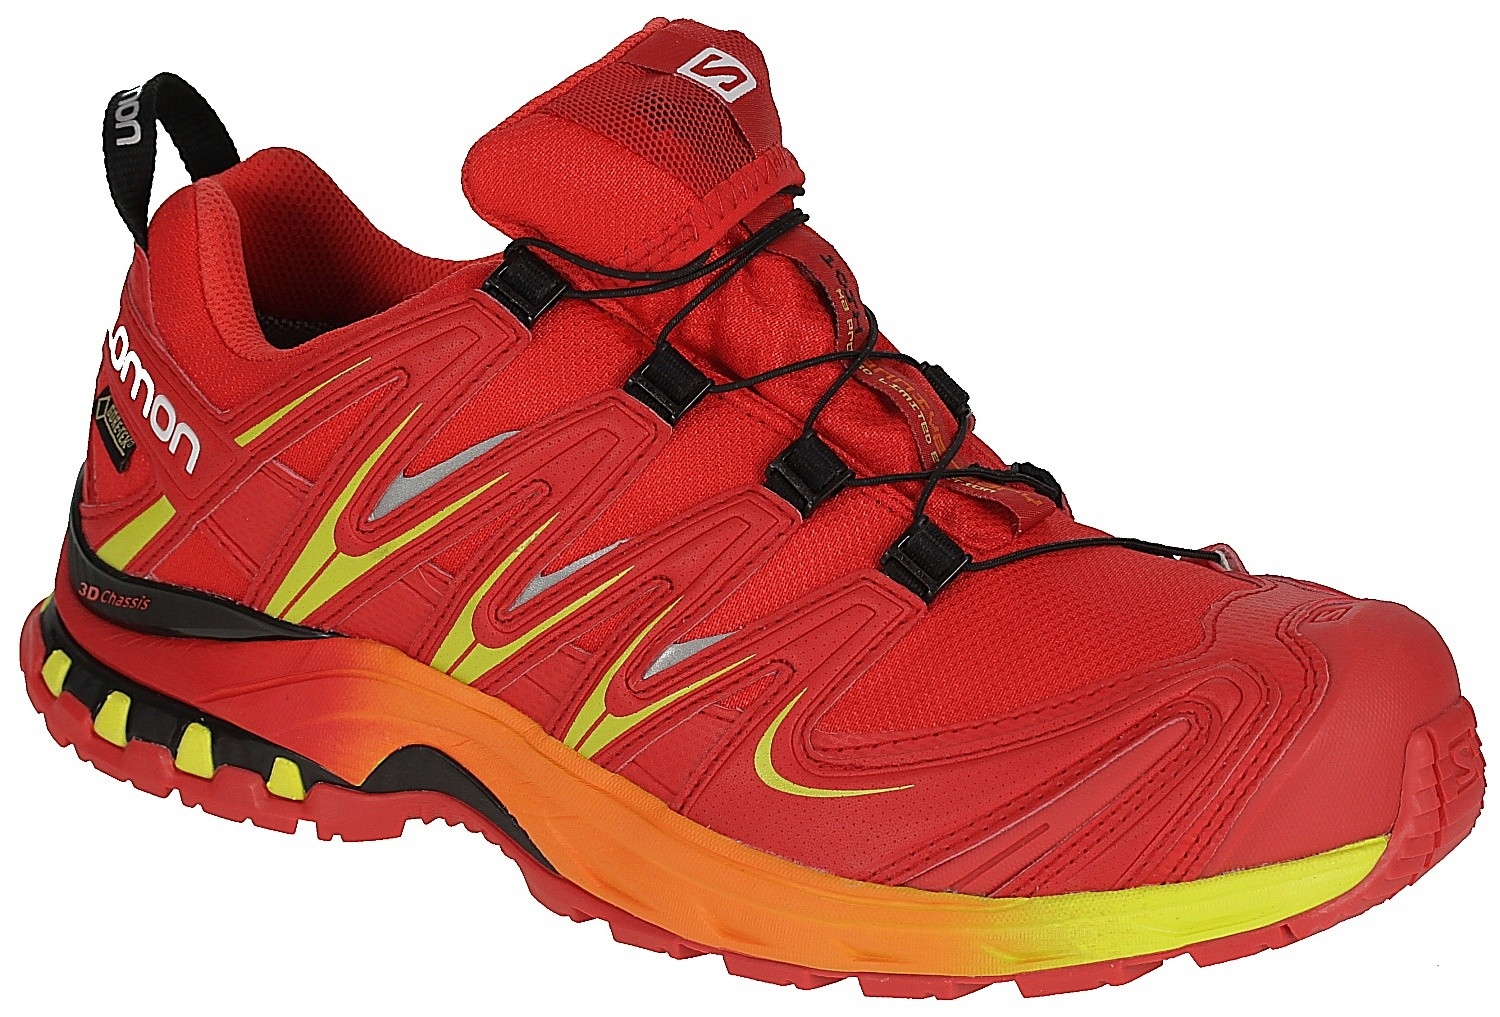 SalomonXA PRO 3D GTX - Trail running shoes - red dahlia Py6ugfRsYz